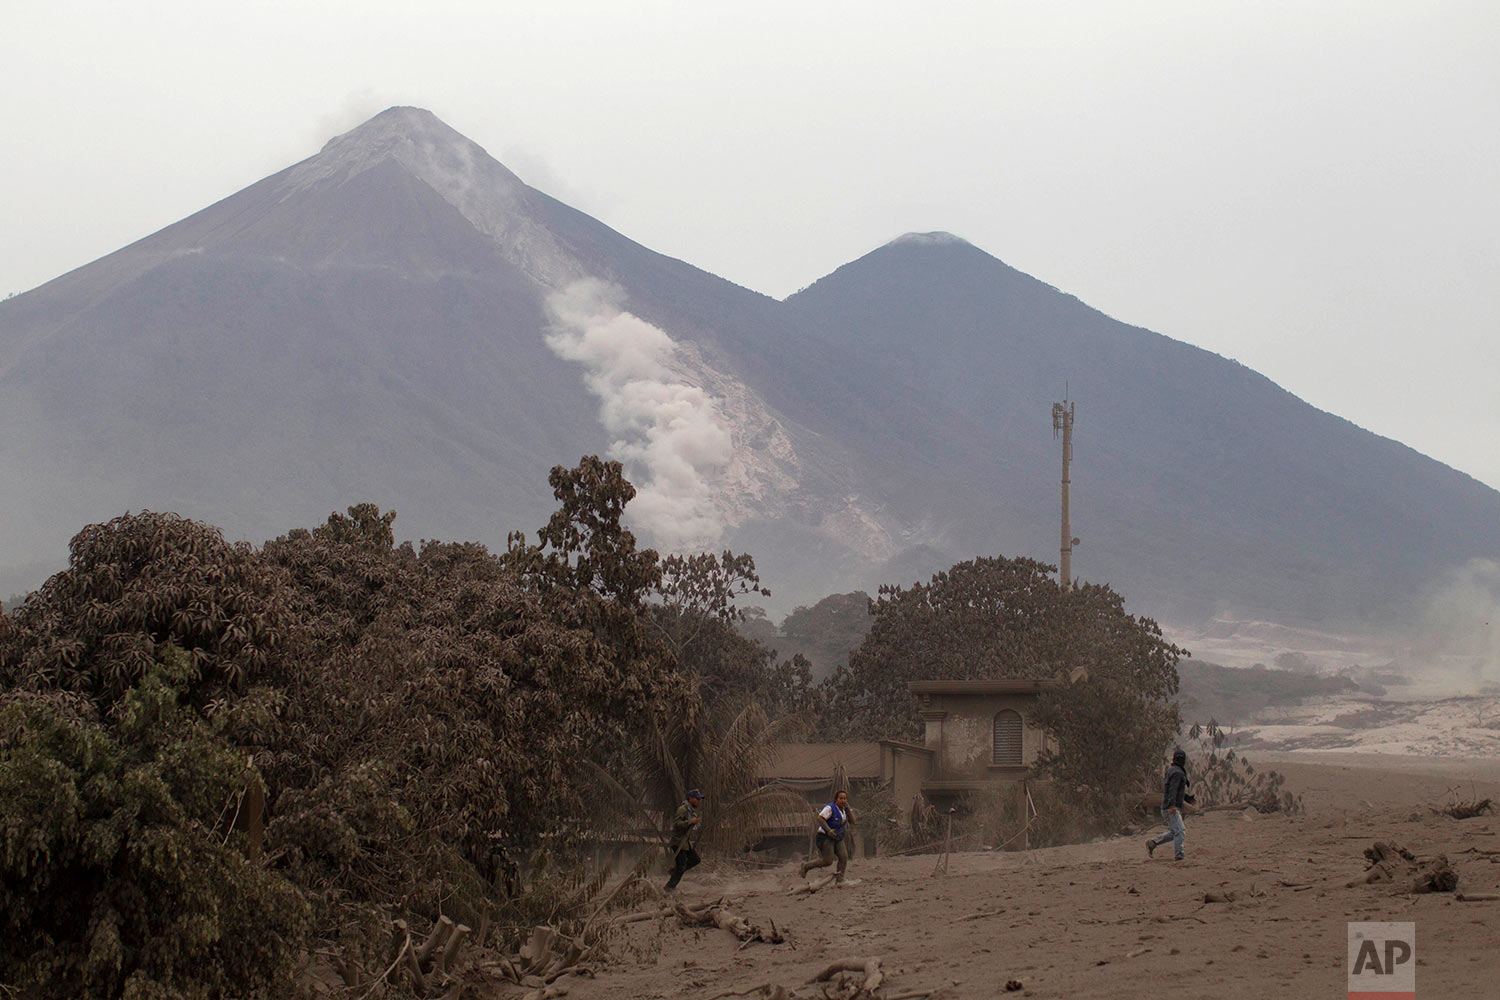 The Volcan de Fuego, or Volcano of Fire, continues to spill out smoke and ash as residents evacuate Escuintla, Guatemala, Monday, June 4, 2018. (AP Photo/Luis Soto)